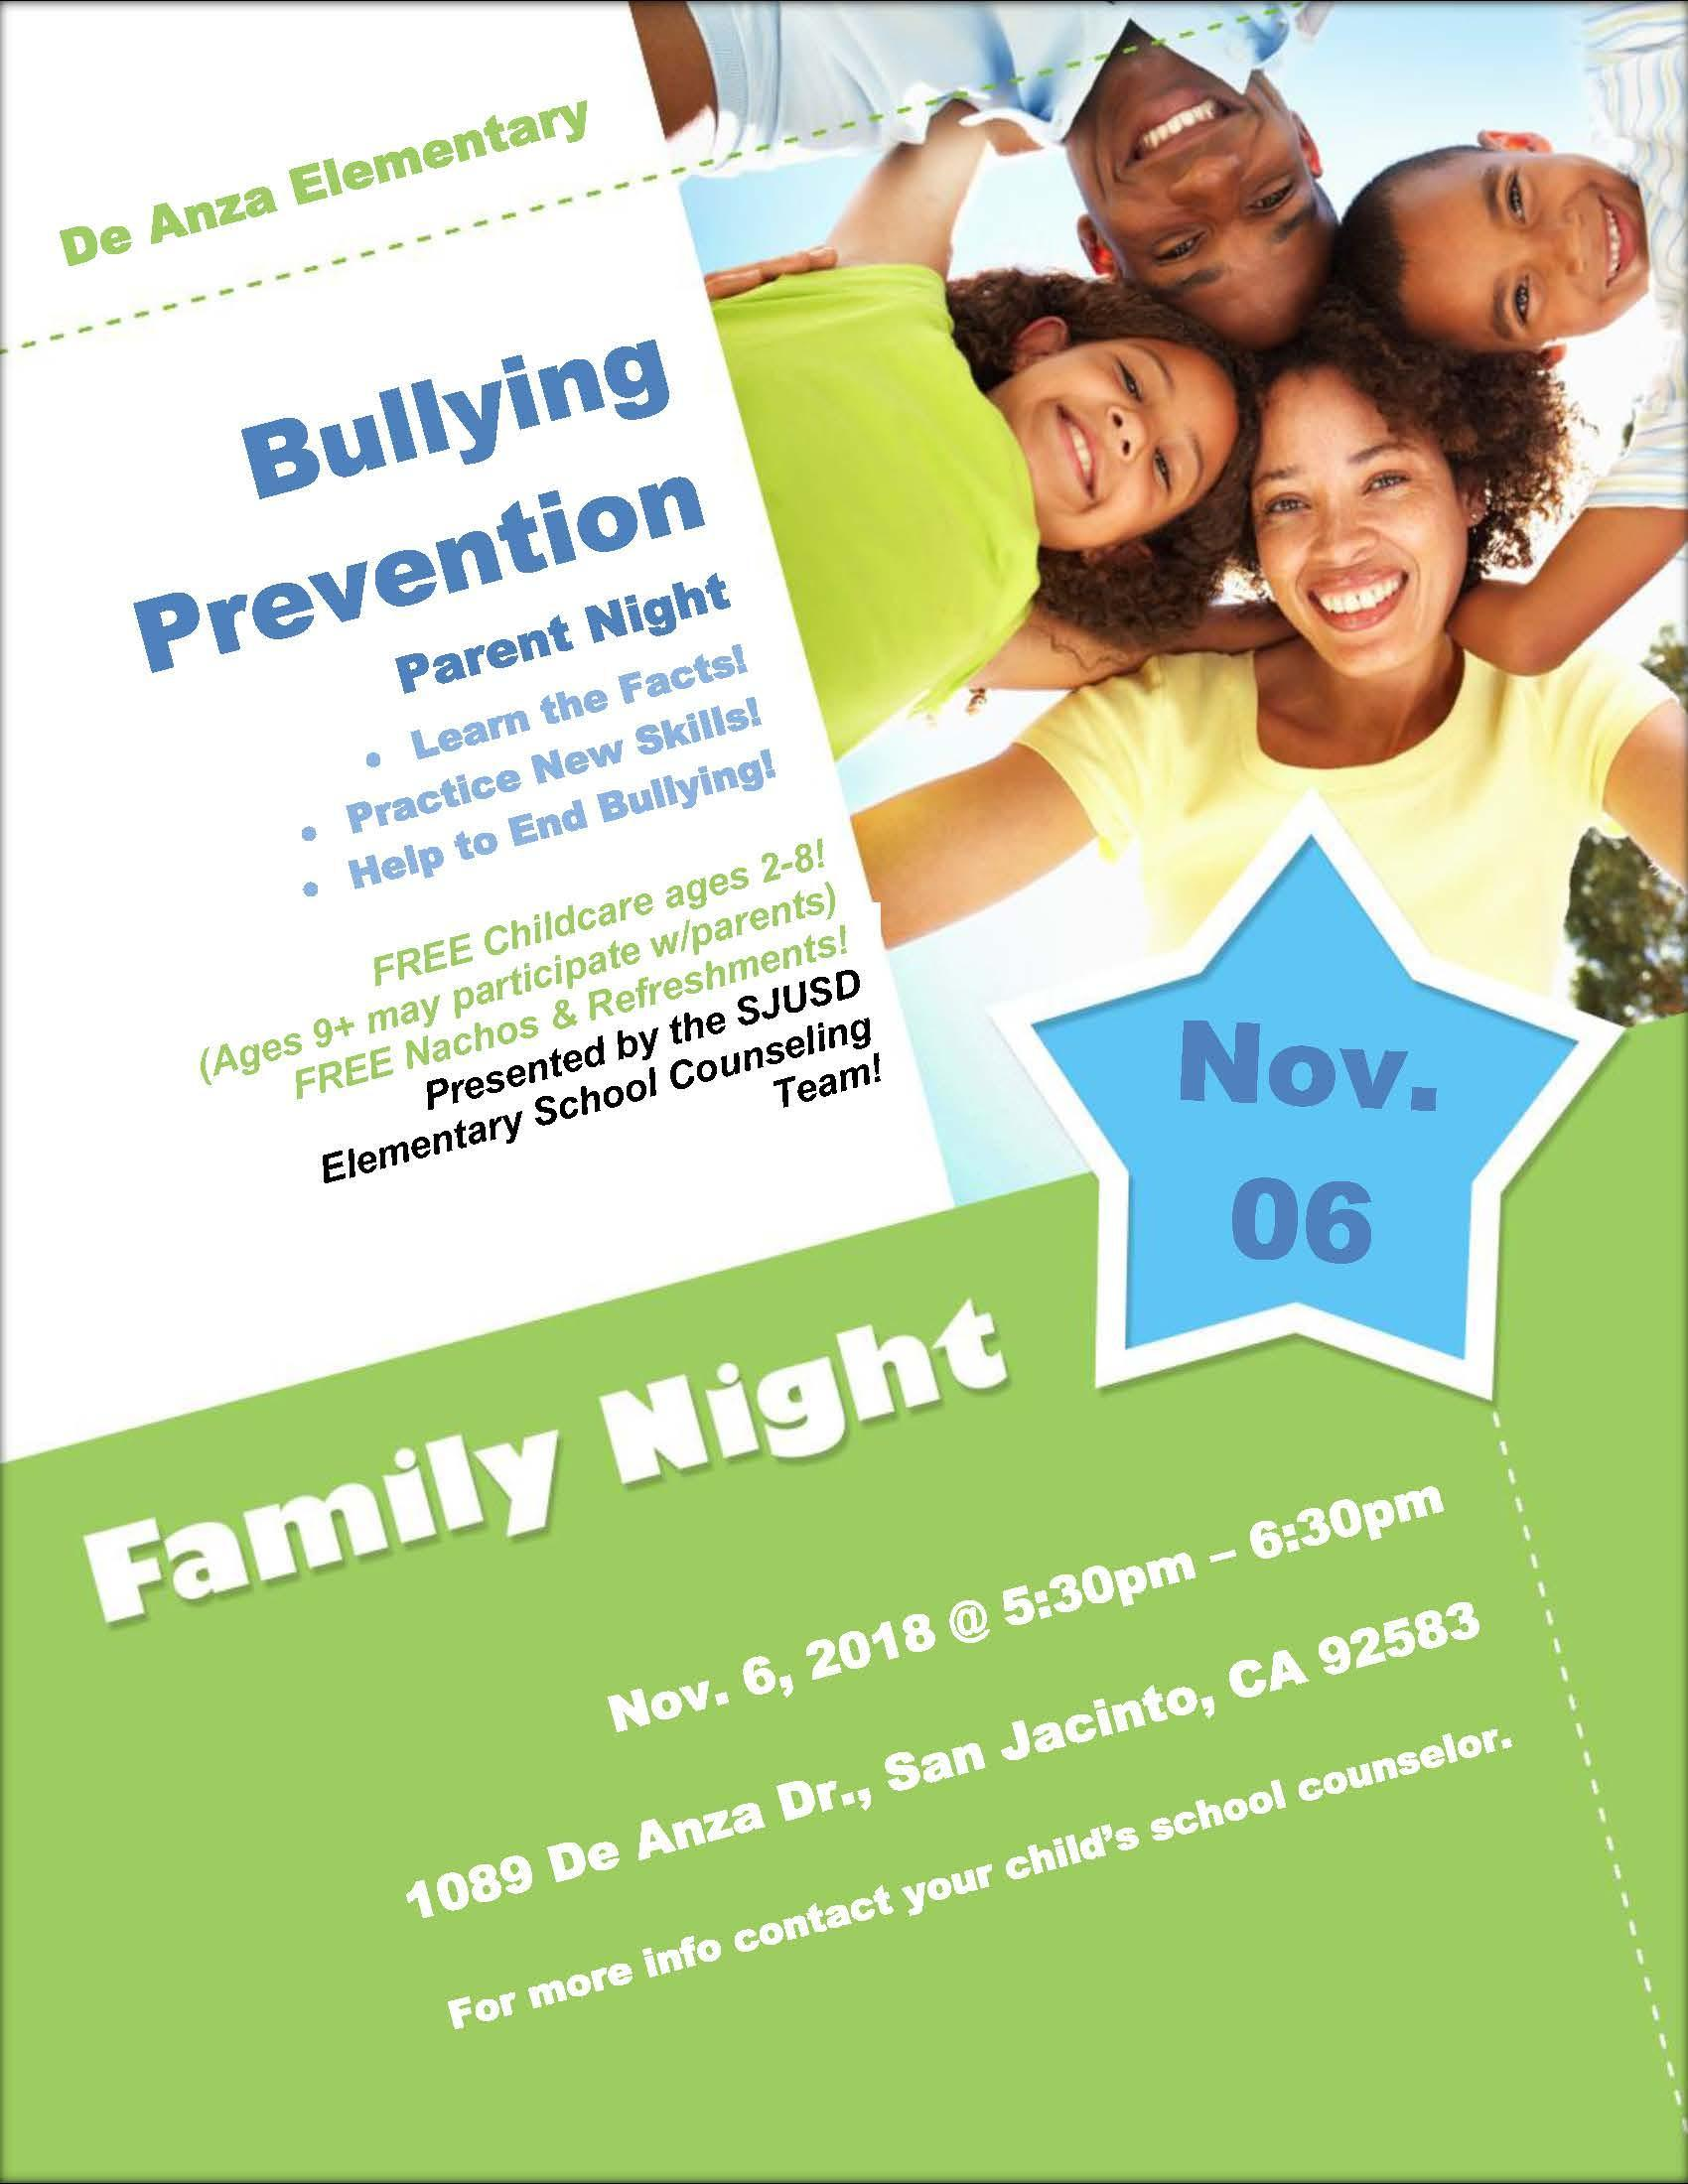 Bullying Prevention Parent Night 11.06.18